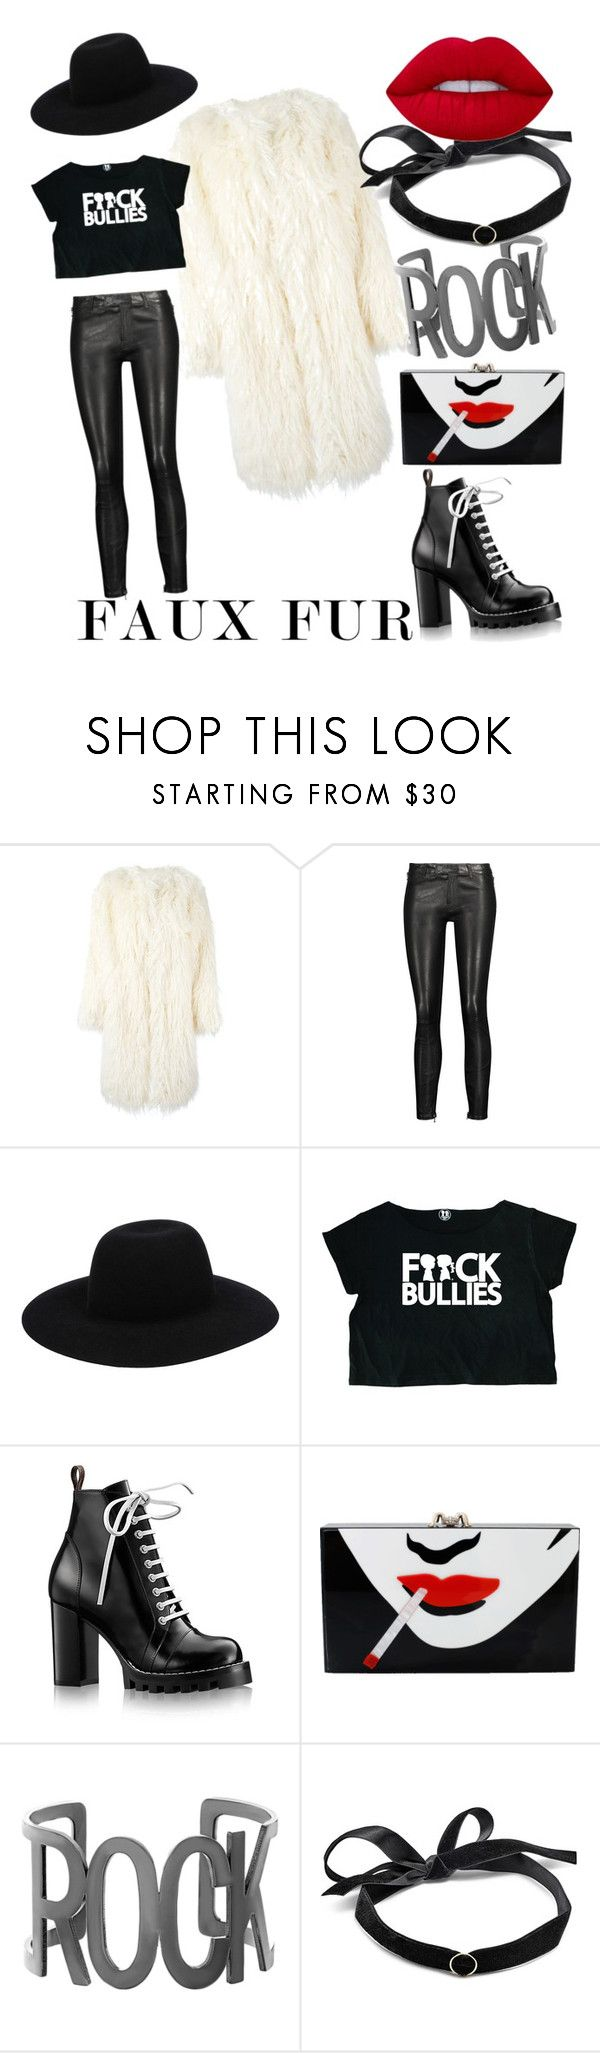 """Faux fur rocks"" by marusyaorlova ❤ liked on Polyvore featuring DKNY, J Brand, Off-White, Boy Meets Girl, Louis Vuitton, Charlotte Olympia, Steve Madden, Mateo and Lime Crime"